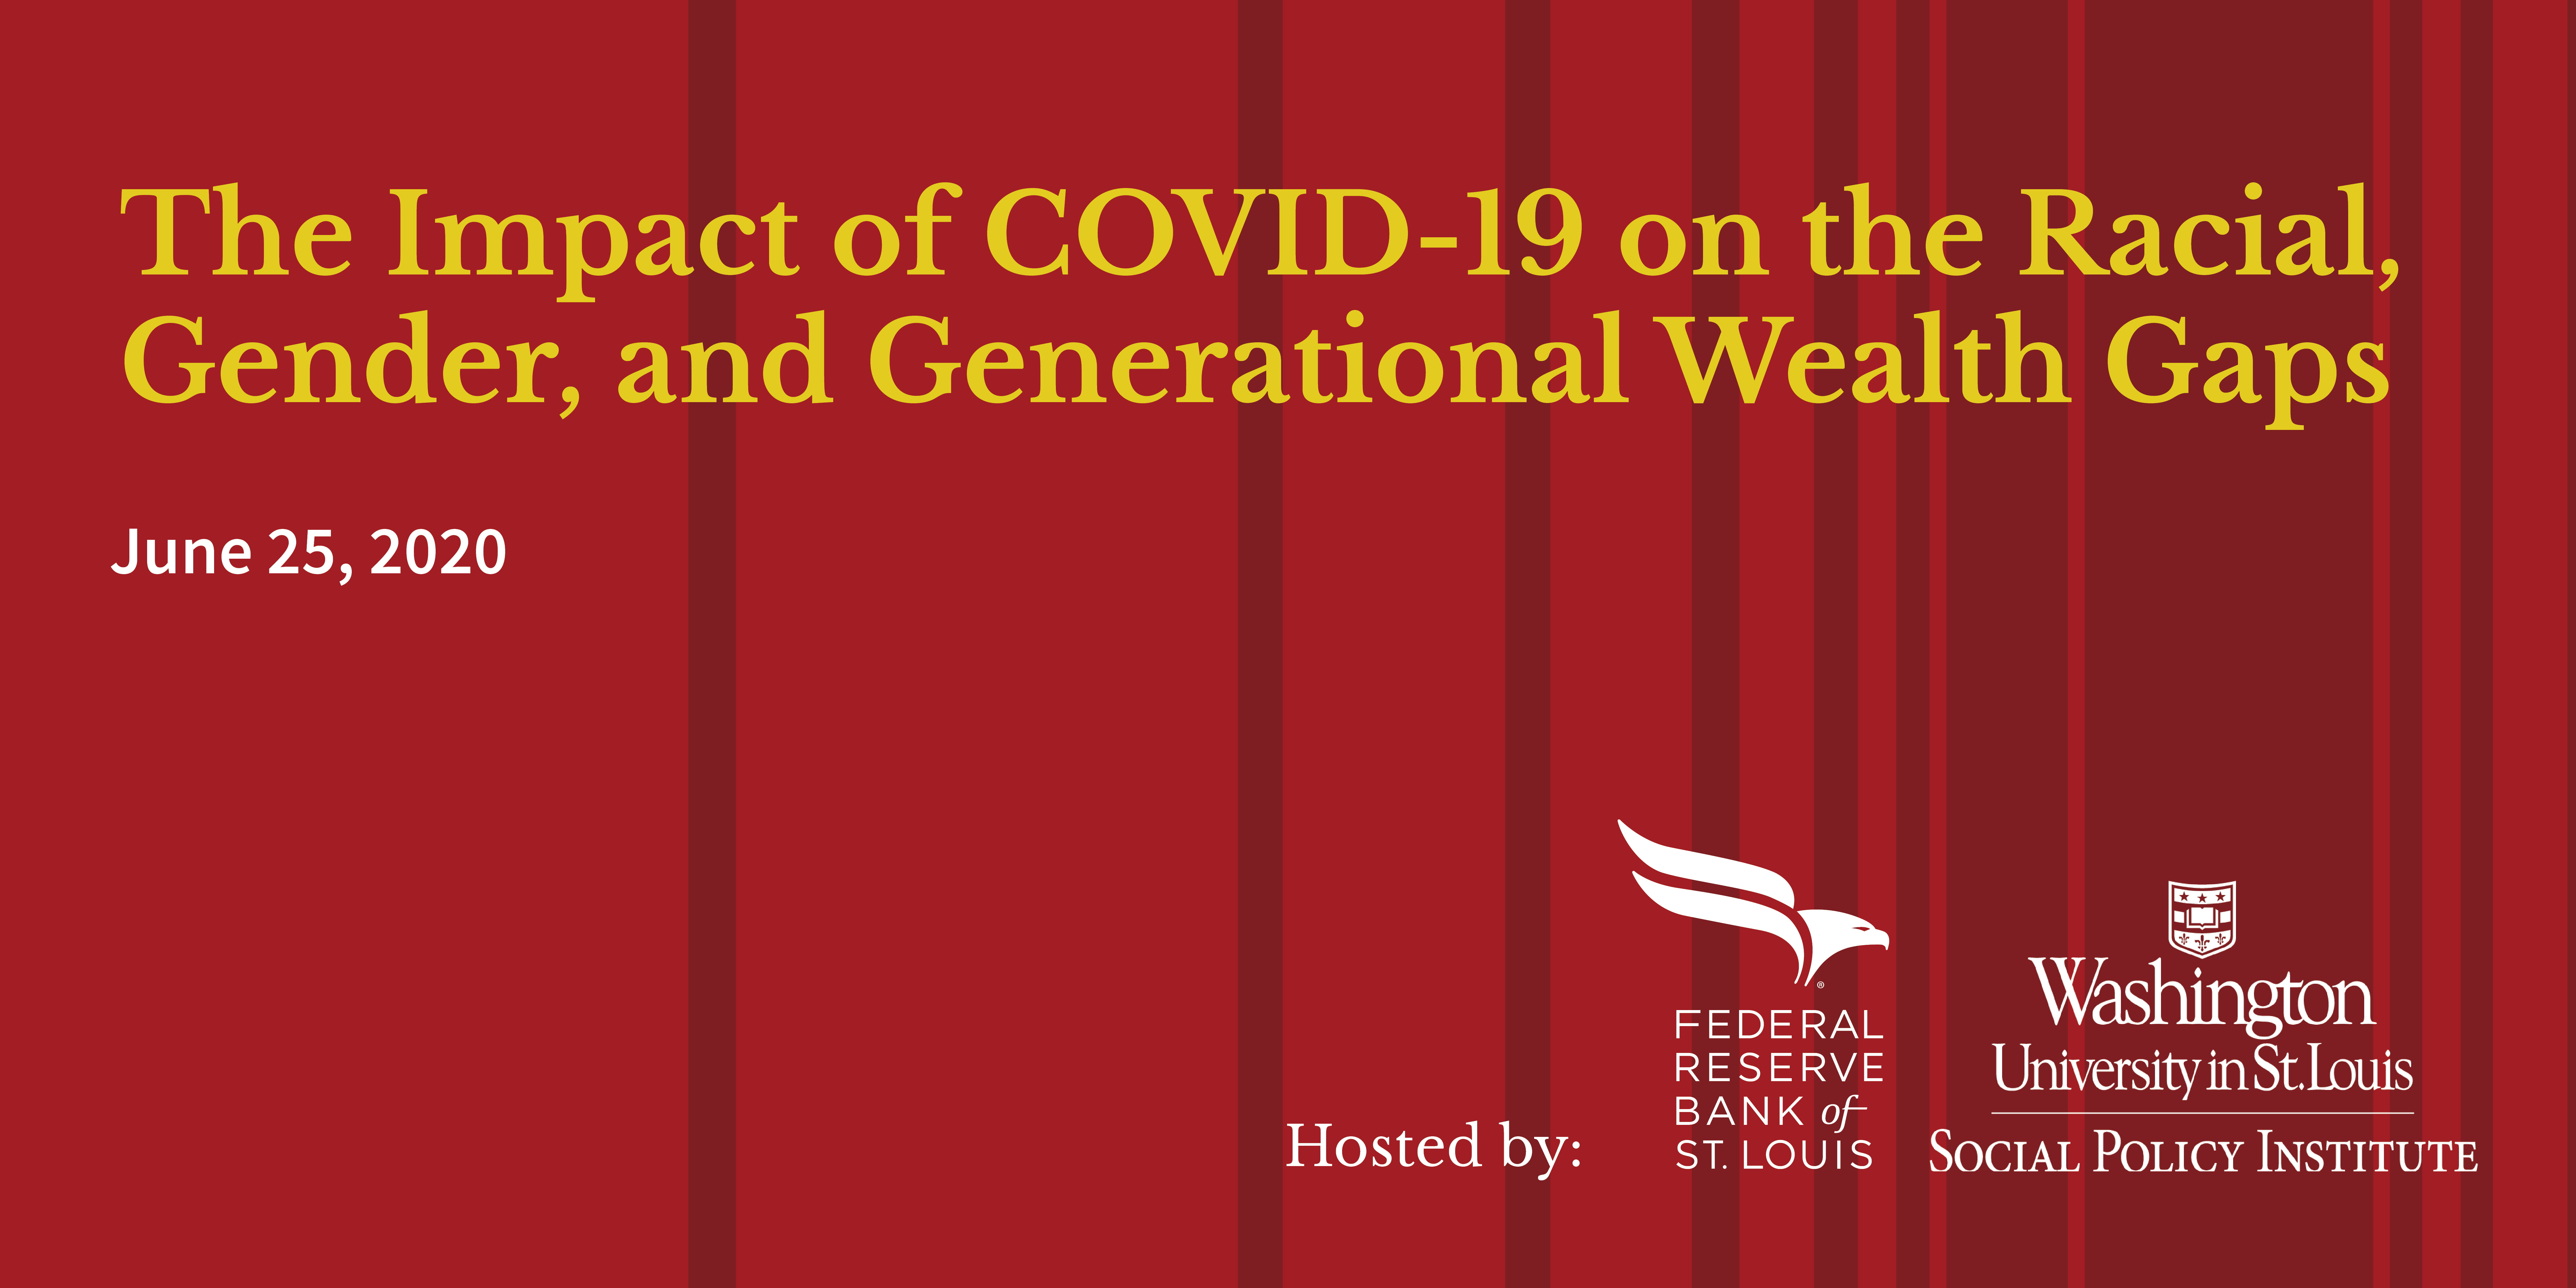 The Impact of COVID-19 on the Racial, Gender and Generational Wealth Gaps